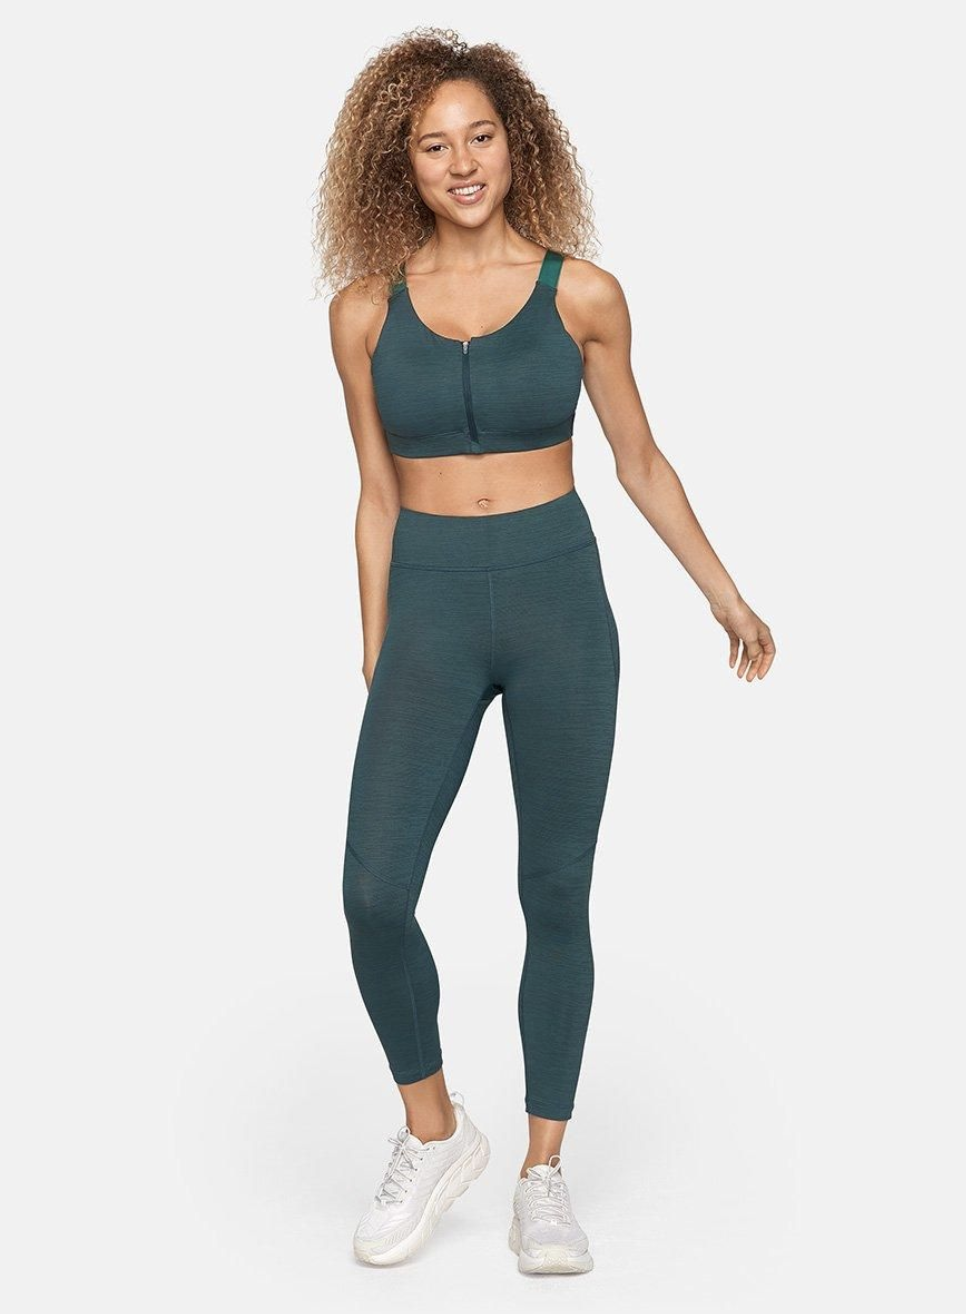 We'd Give Up Basic Black Leggings for These 6 Fresh Spring Trends 14